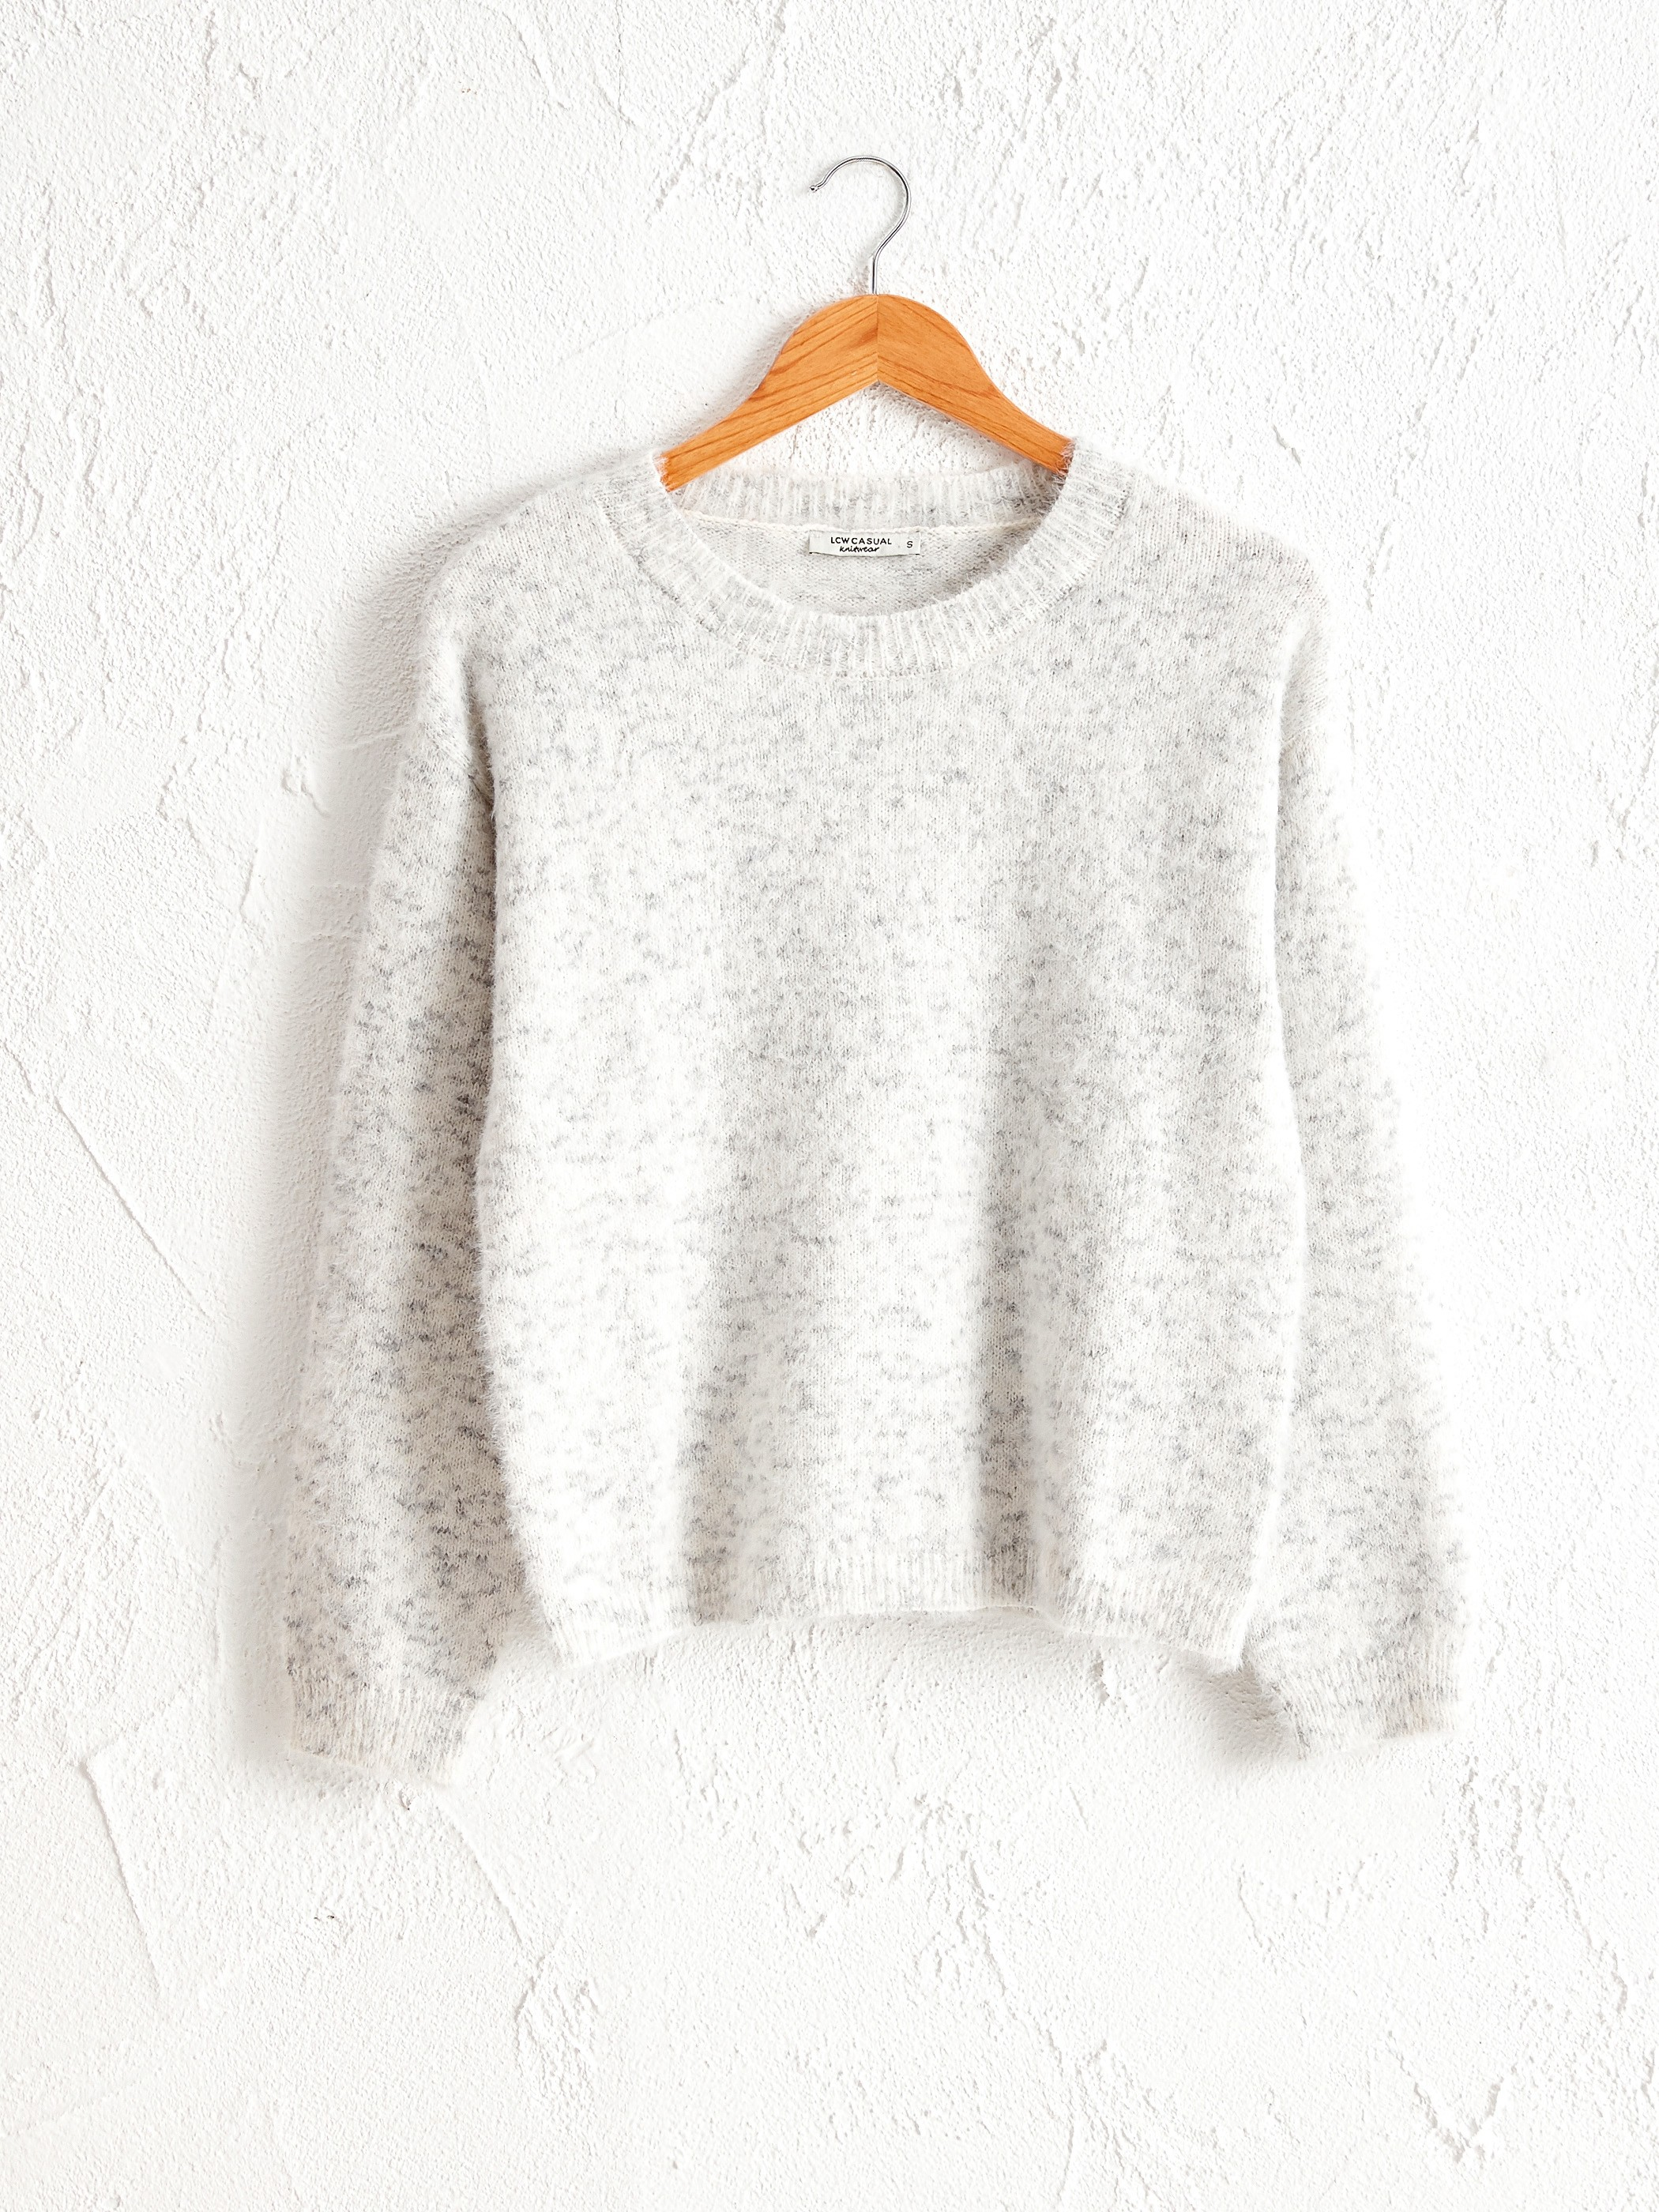 GREY - Glitter Detailed and Furry Tricot Jumper - 0W6167Z8